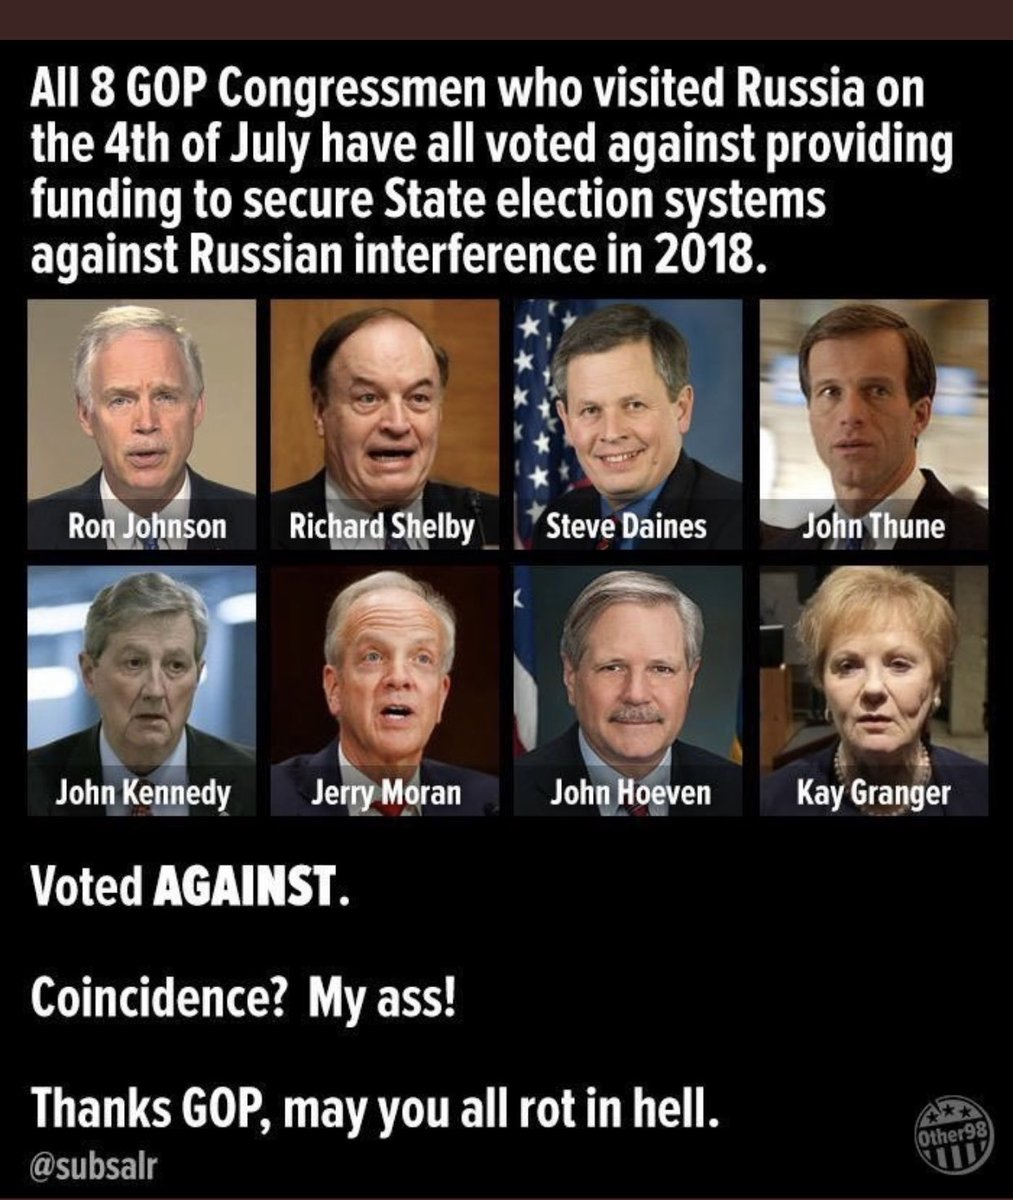 Hey, I wonder how many GOP Leaders spent this 4th of July in Russia? Anyone know? Asking for a friend. #PutinsGOP #TrumpKnewAboutRussianBounty #TrumpPenseSpreadCovid19 twitter.com/discoal_66/sta…